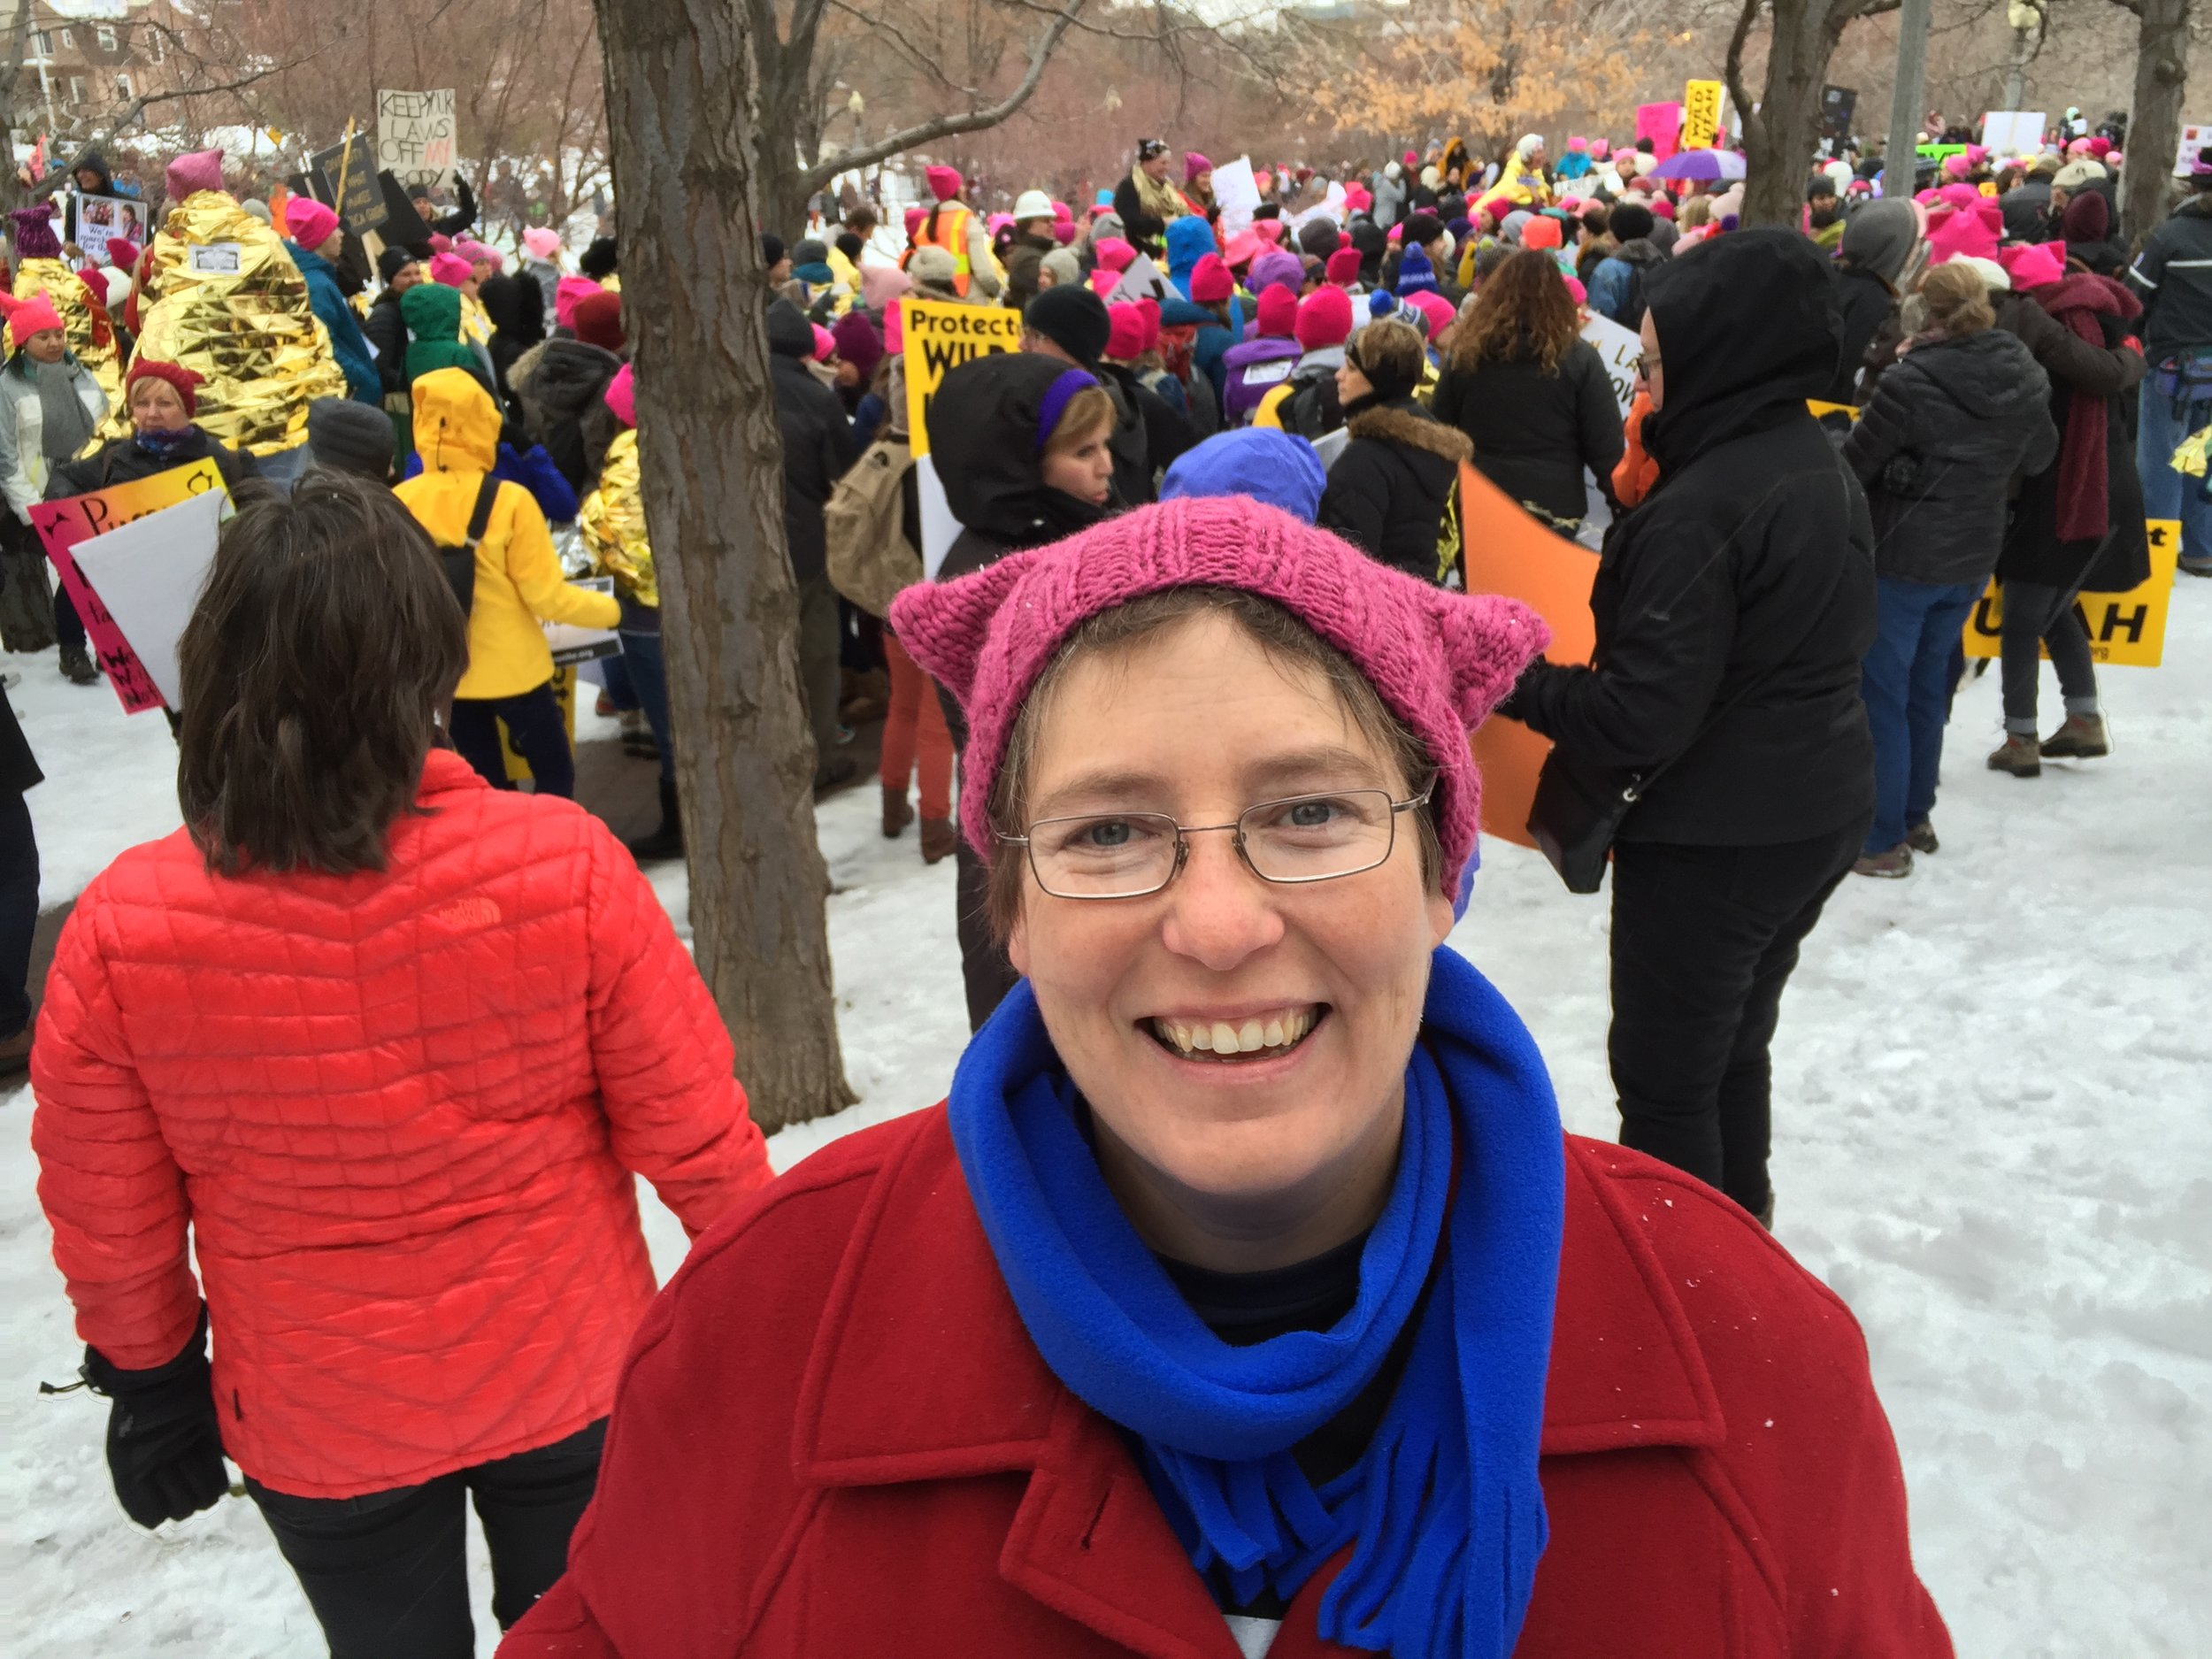 Stacy Palen at a women's march in Salt Lake City (January 23, 2017) Photo by Andrea Smardon